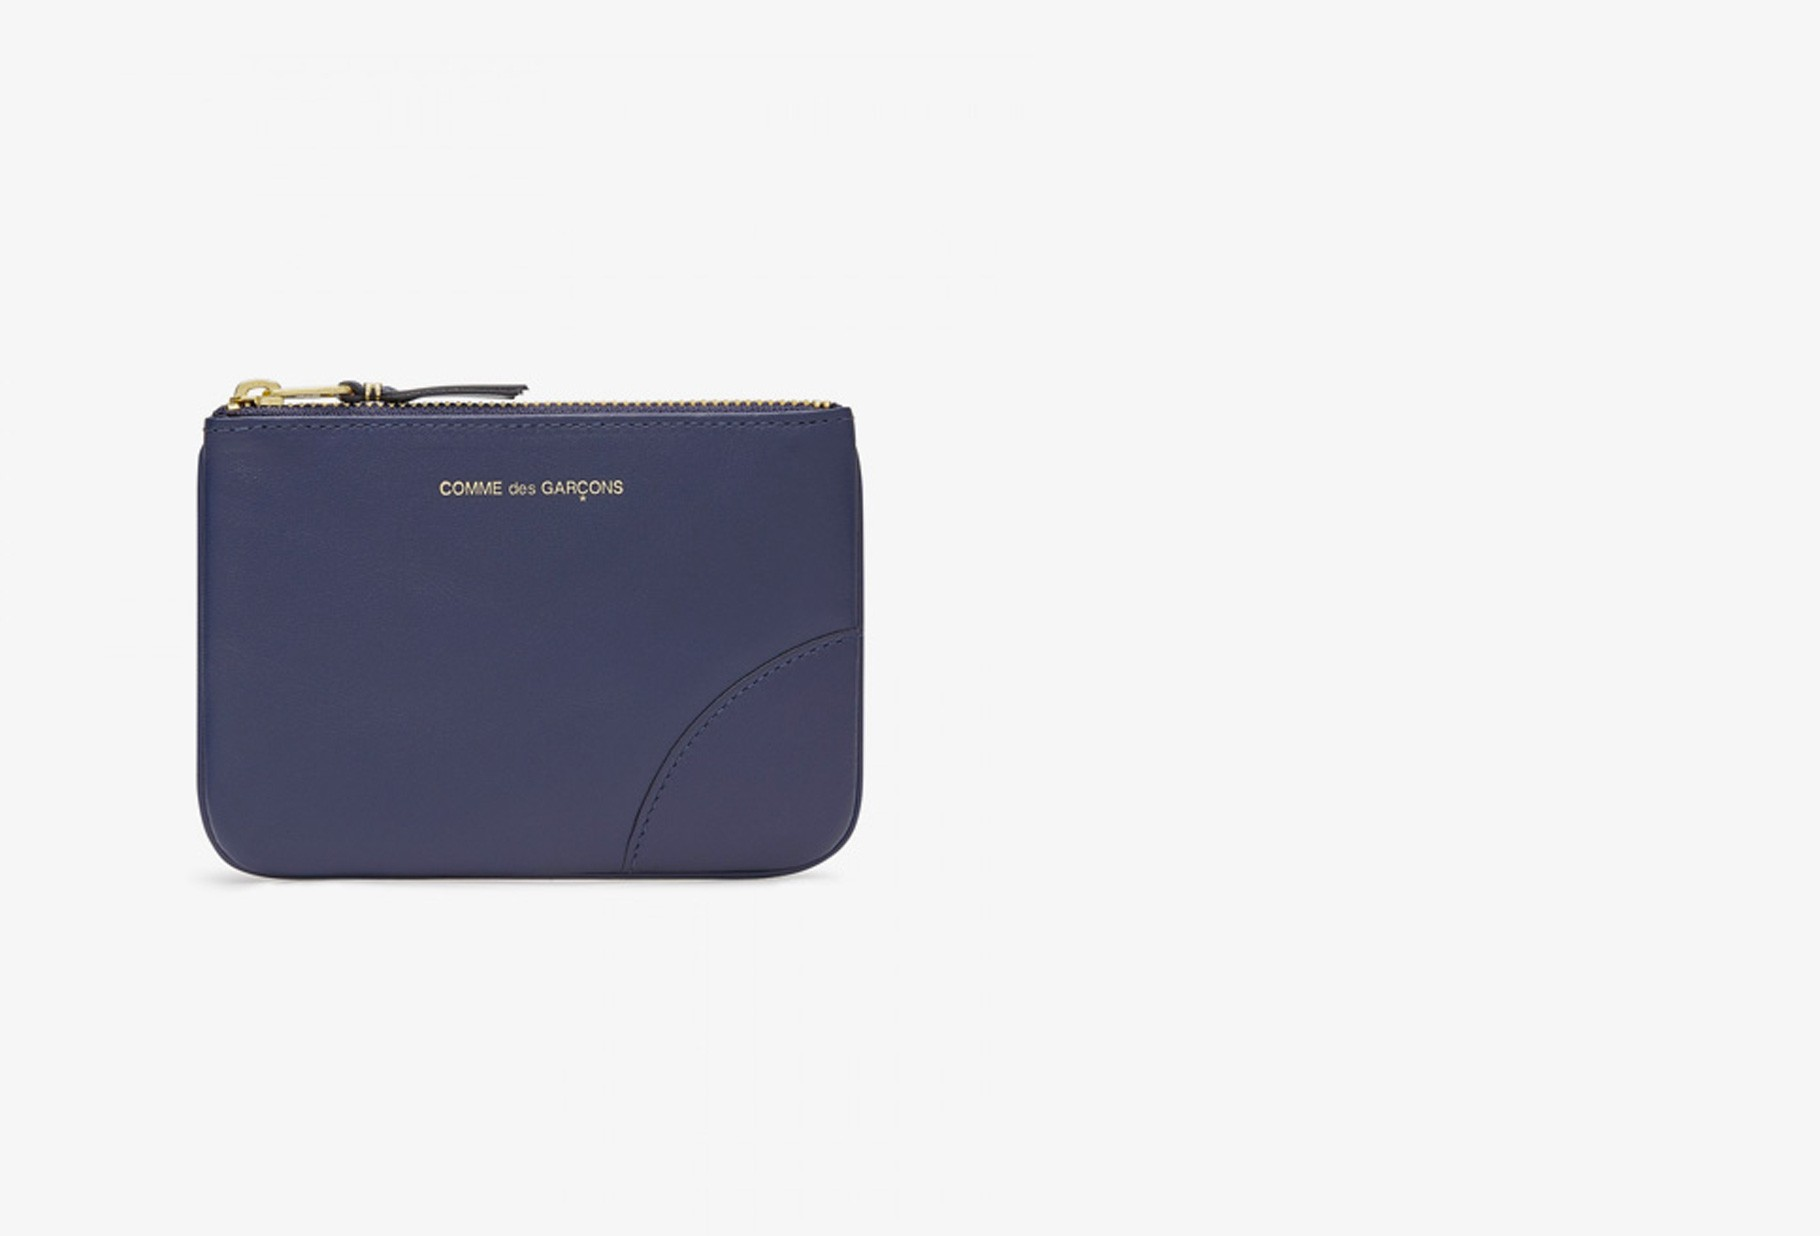 CDG WALLETS FOR WOMAN / Cdg classic leather sa8100 Navy